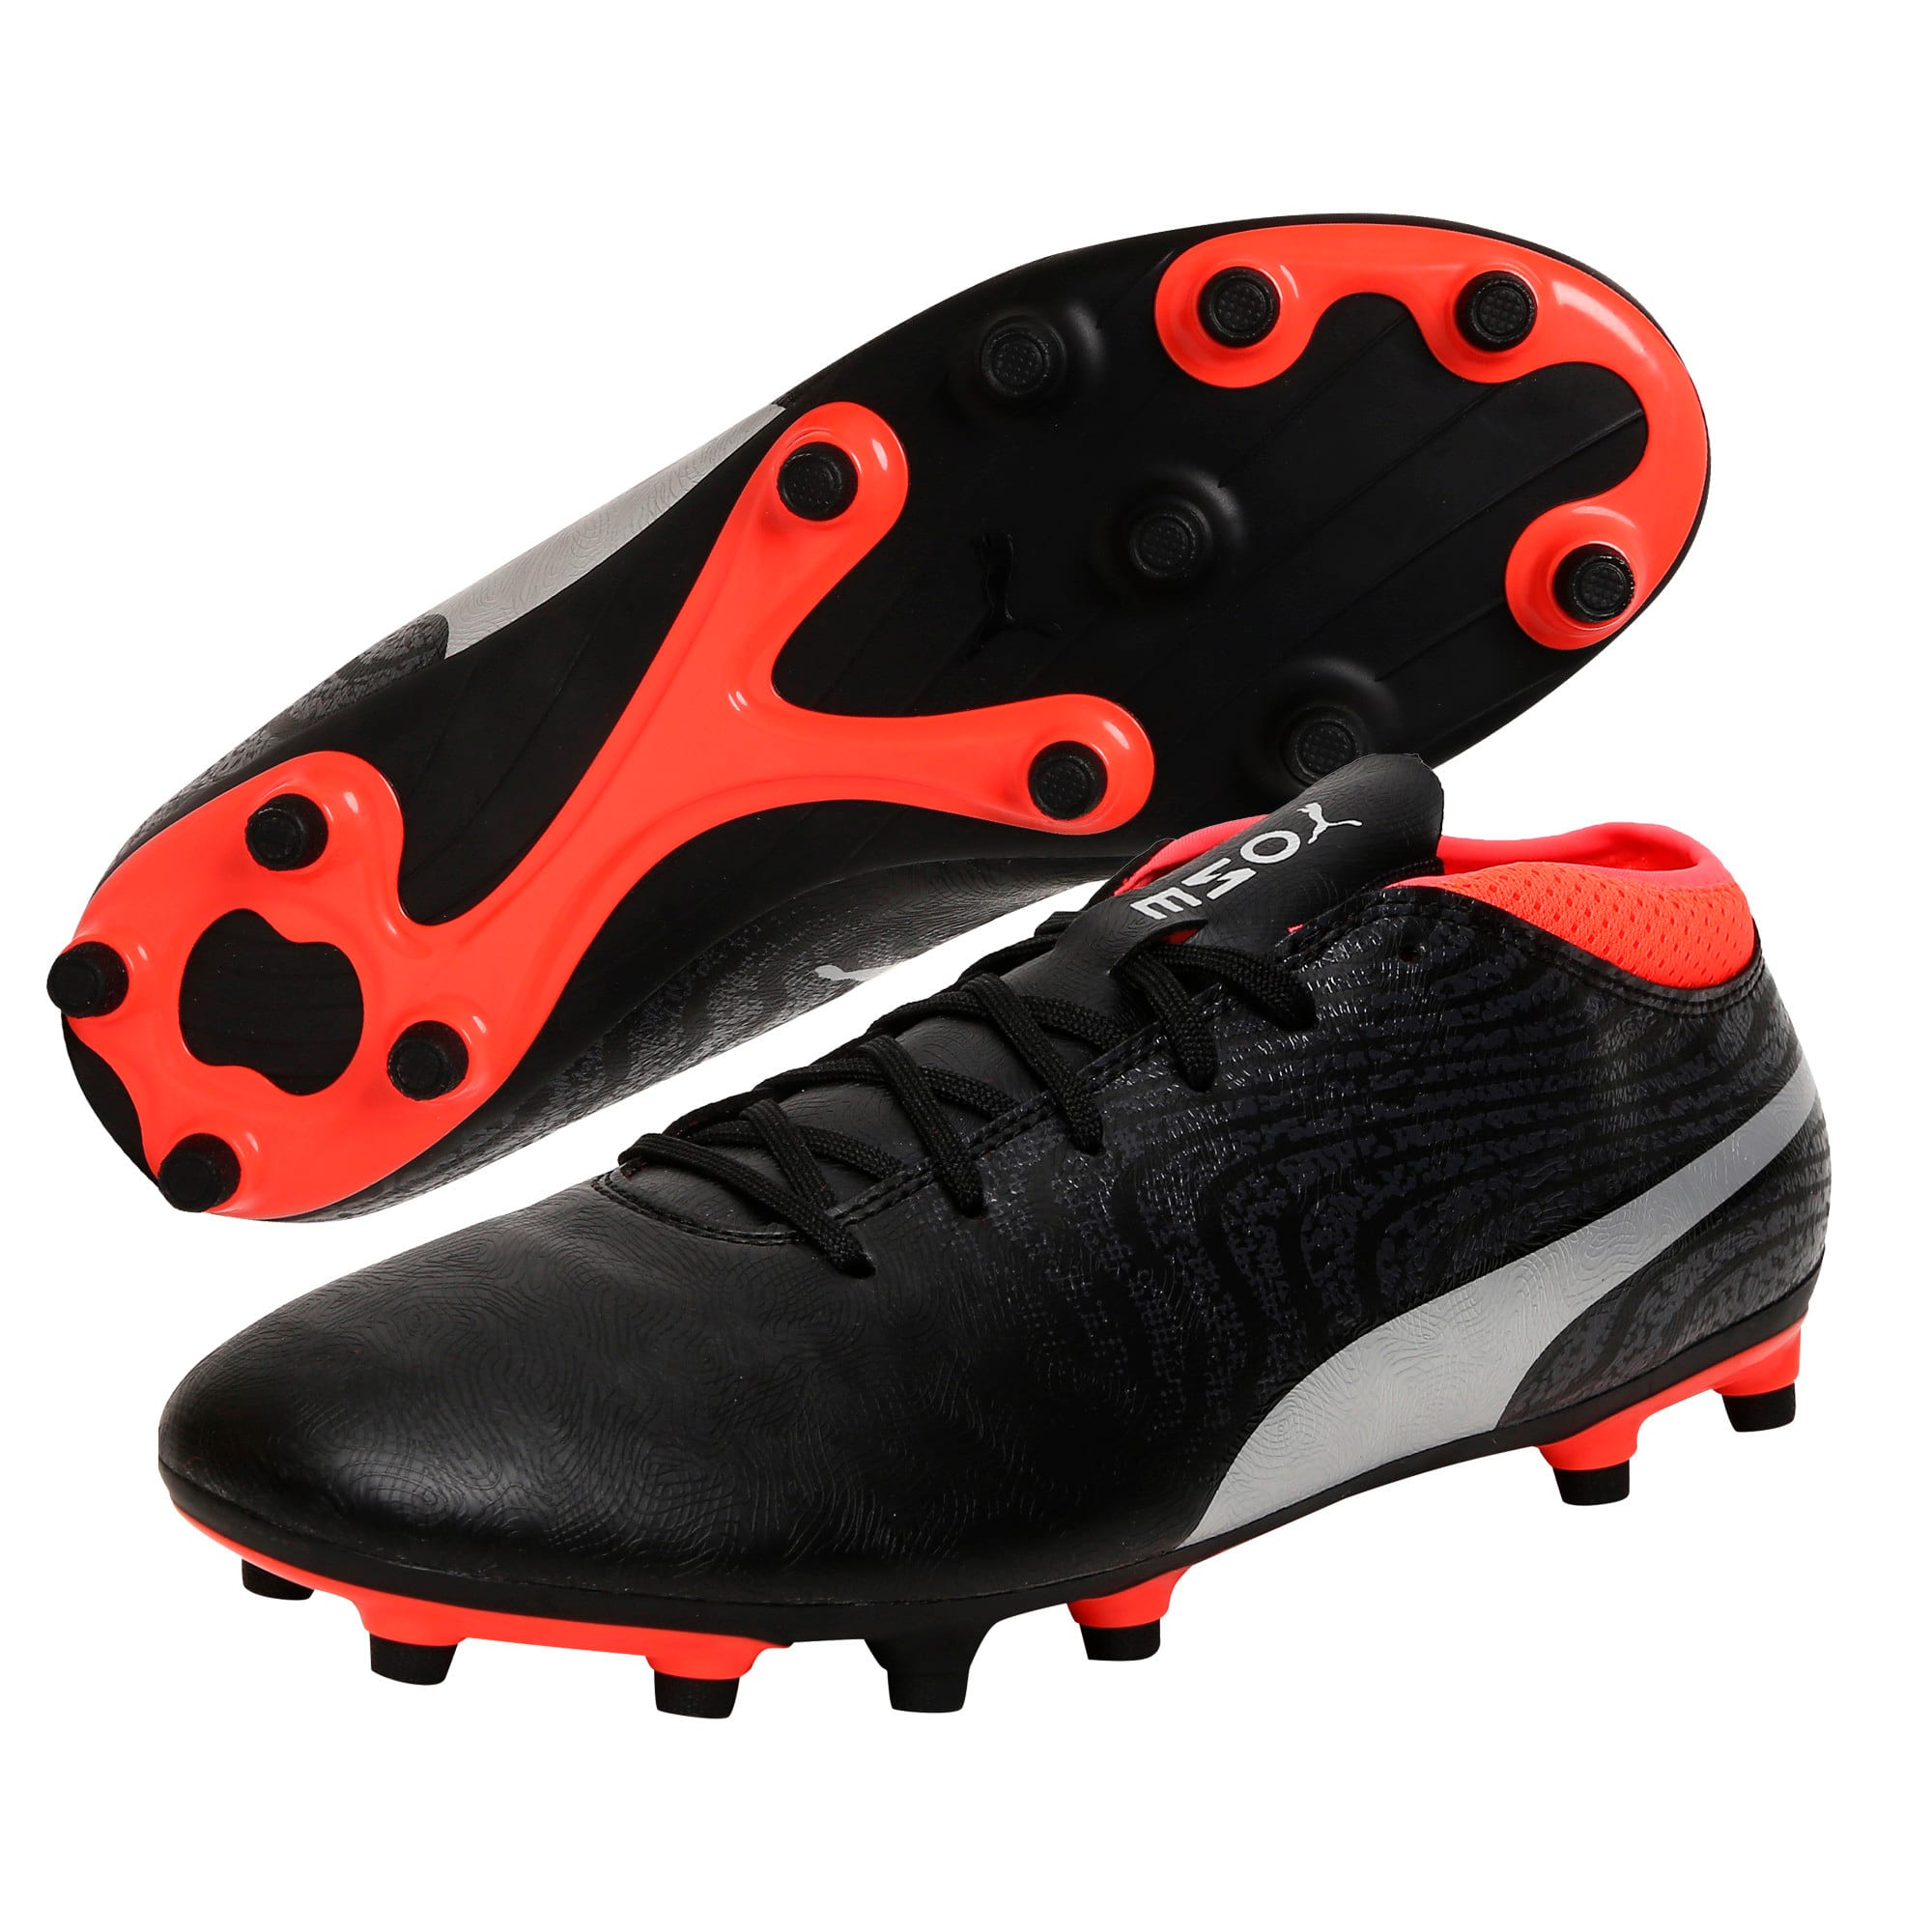 Thumbnail 2 of ONE 18.4 FG Men's Football Boots, Black-Silver-Red, medium-IND